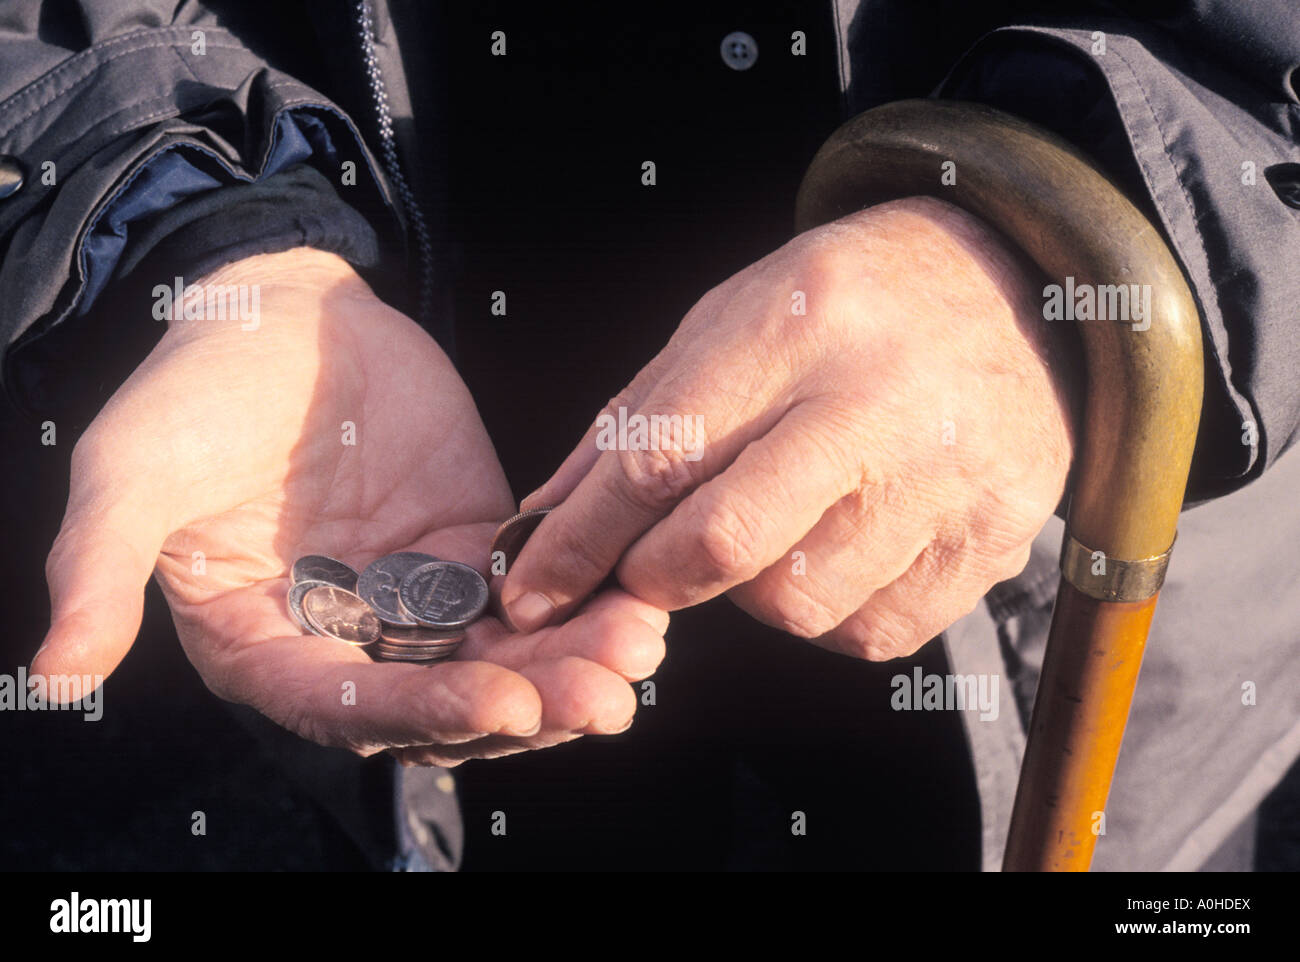 Adult Man With a Cane Shopping and Counting Money on the Street New York City USA - Stock Image